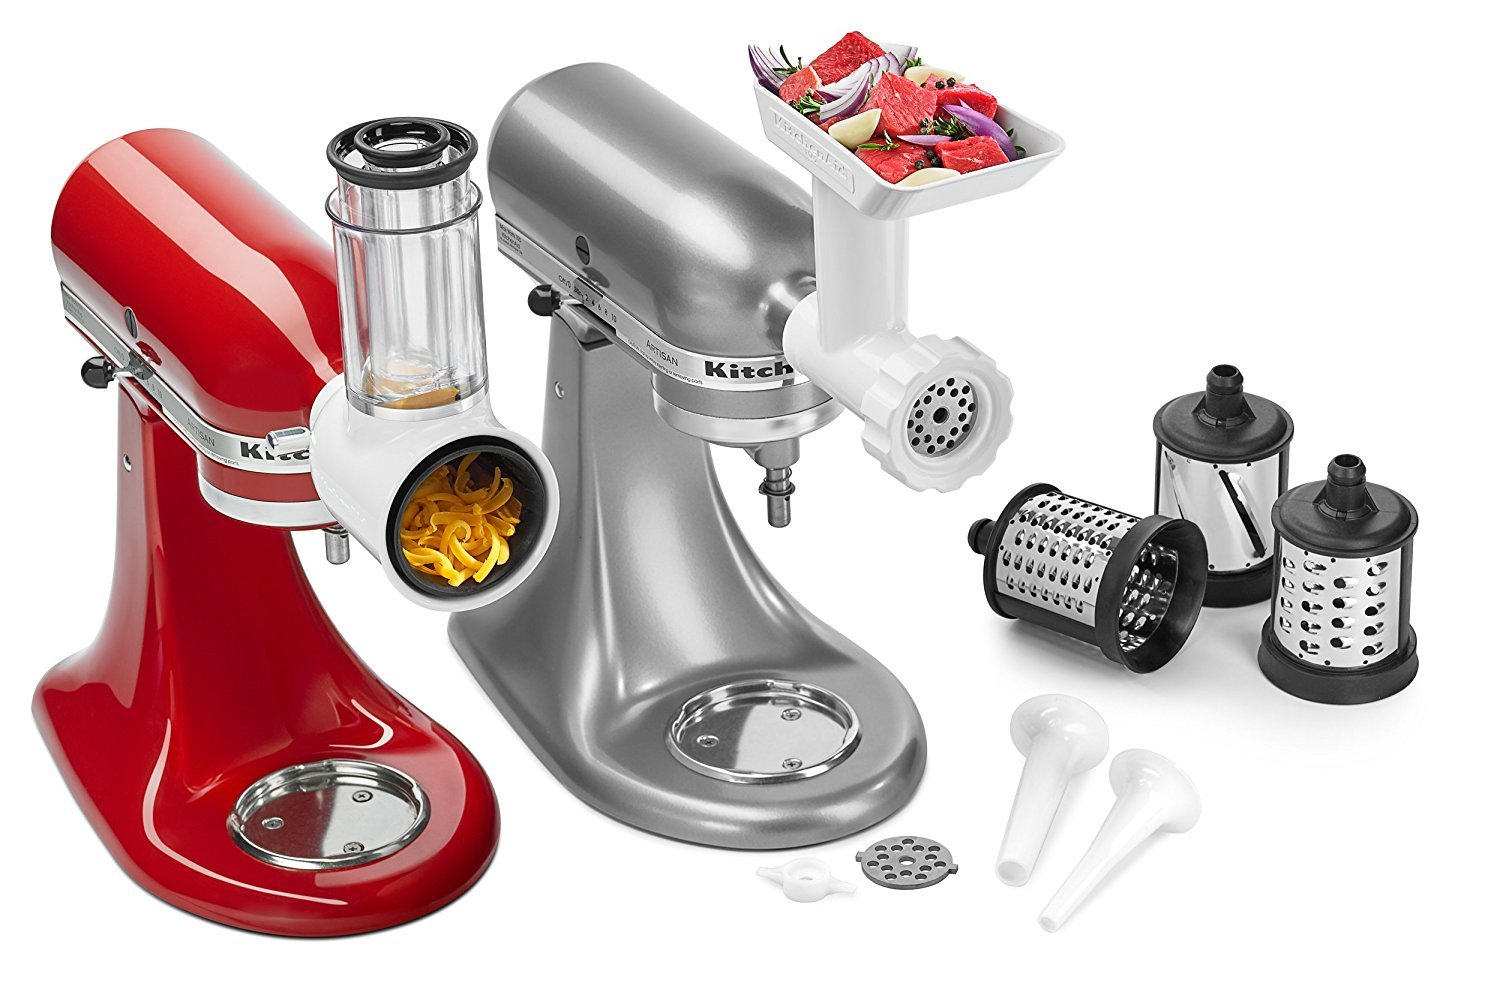 KitchenAid New 2017 Upgraded added Safety featured Standard Mixer Attachment Pack - (Works with all household Kitchenaid Stand Mixers Models) - Limited Stock Rotor Slicer Shredder - Food Grinder - Sausage Stuffer Parts